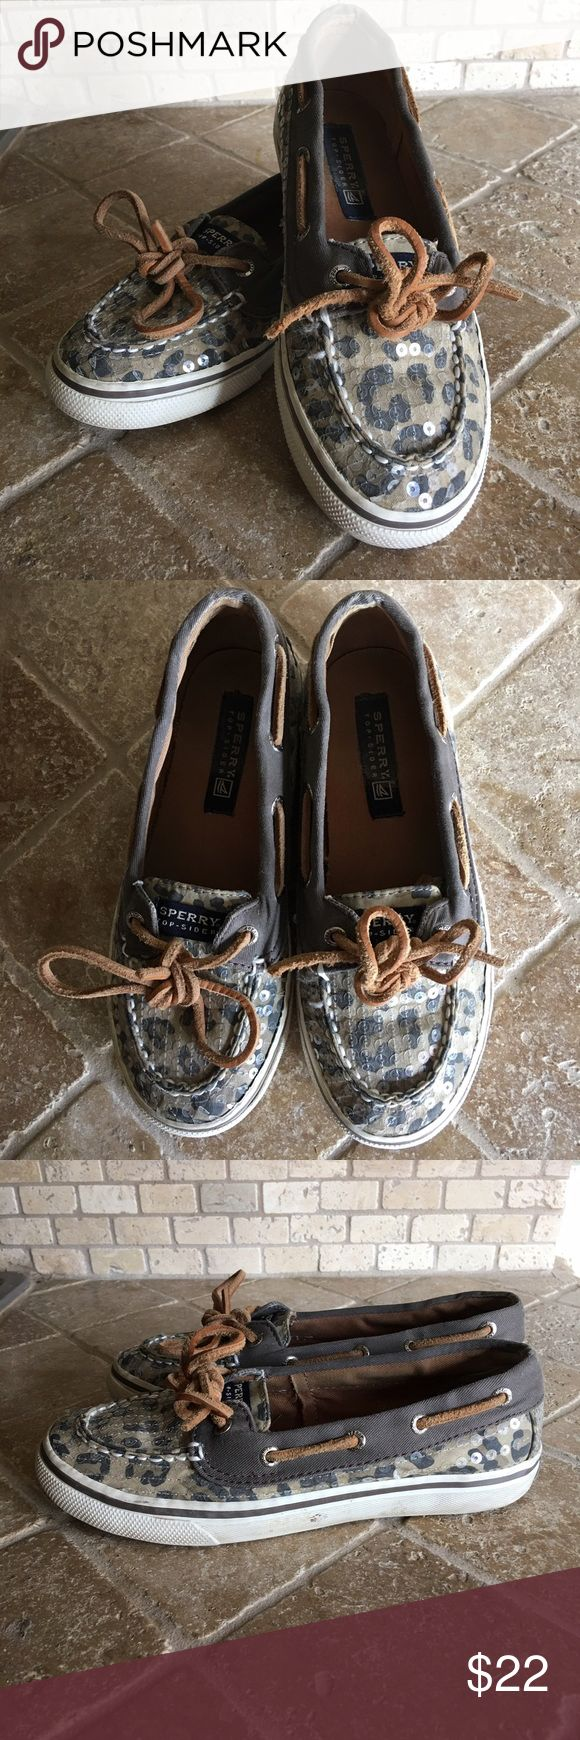 Girl's Sperrys Gently Used animal print Sperrys with sequins. Sperry Top-Sider Shoes Moccasins